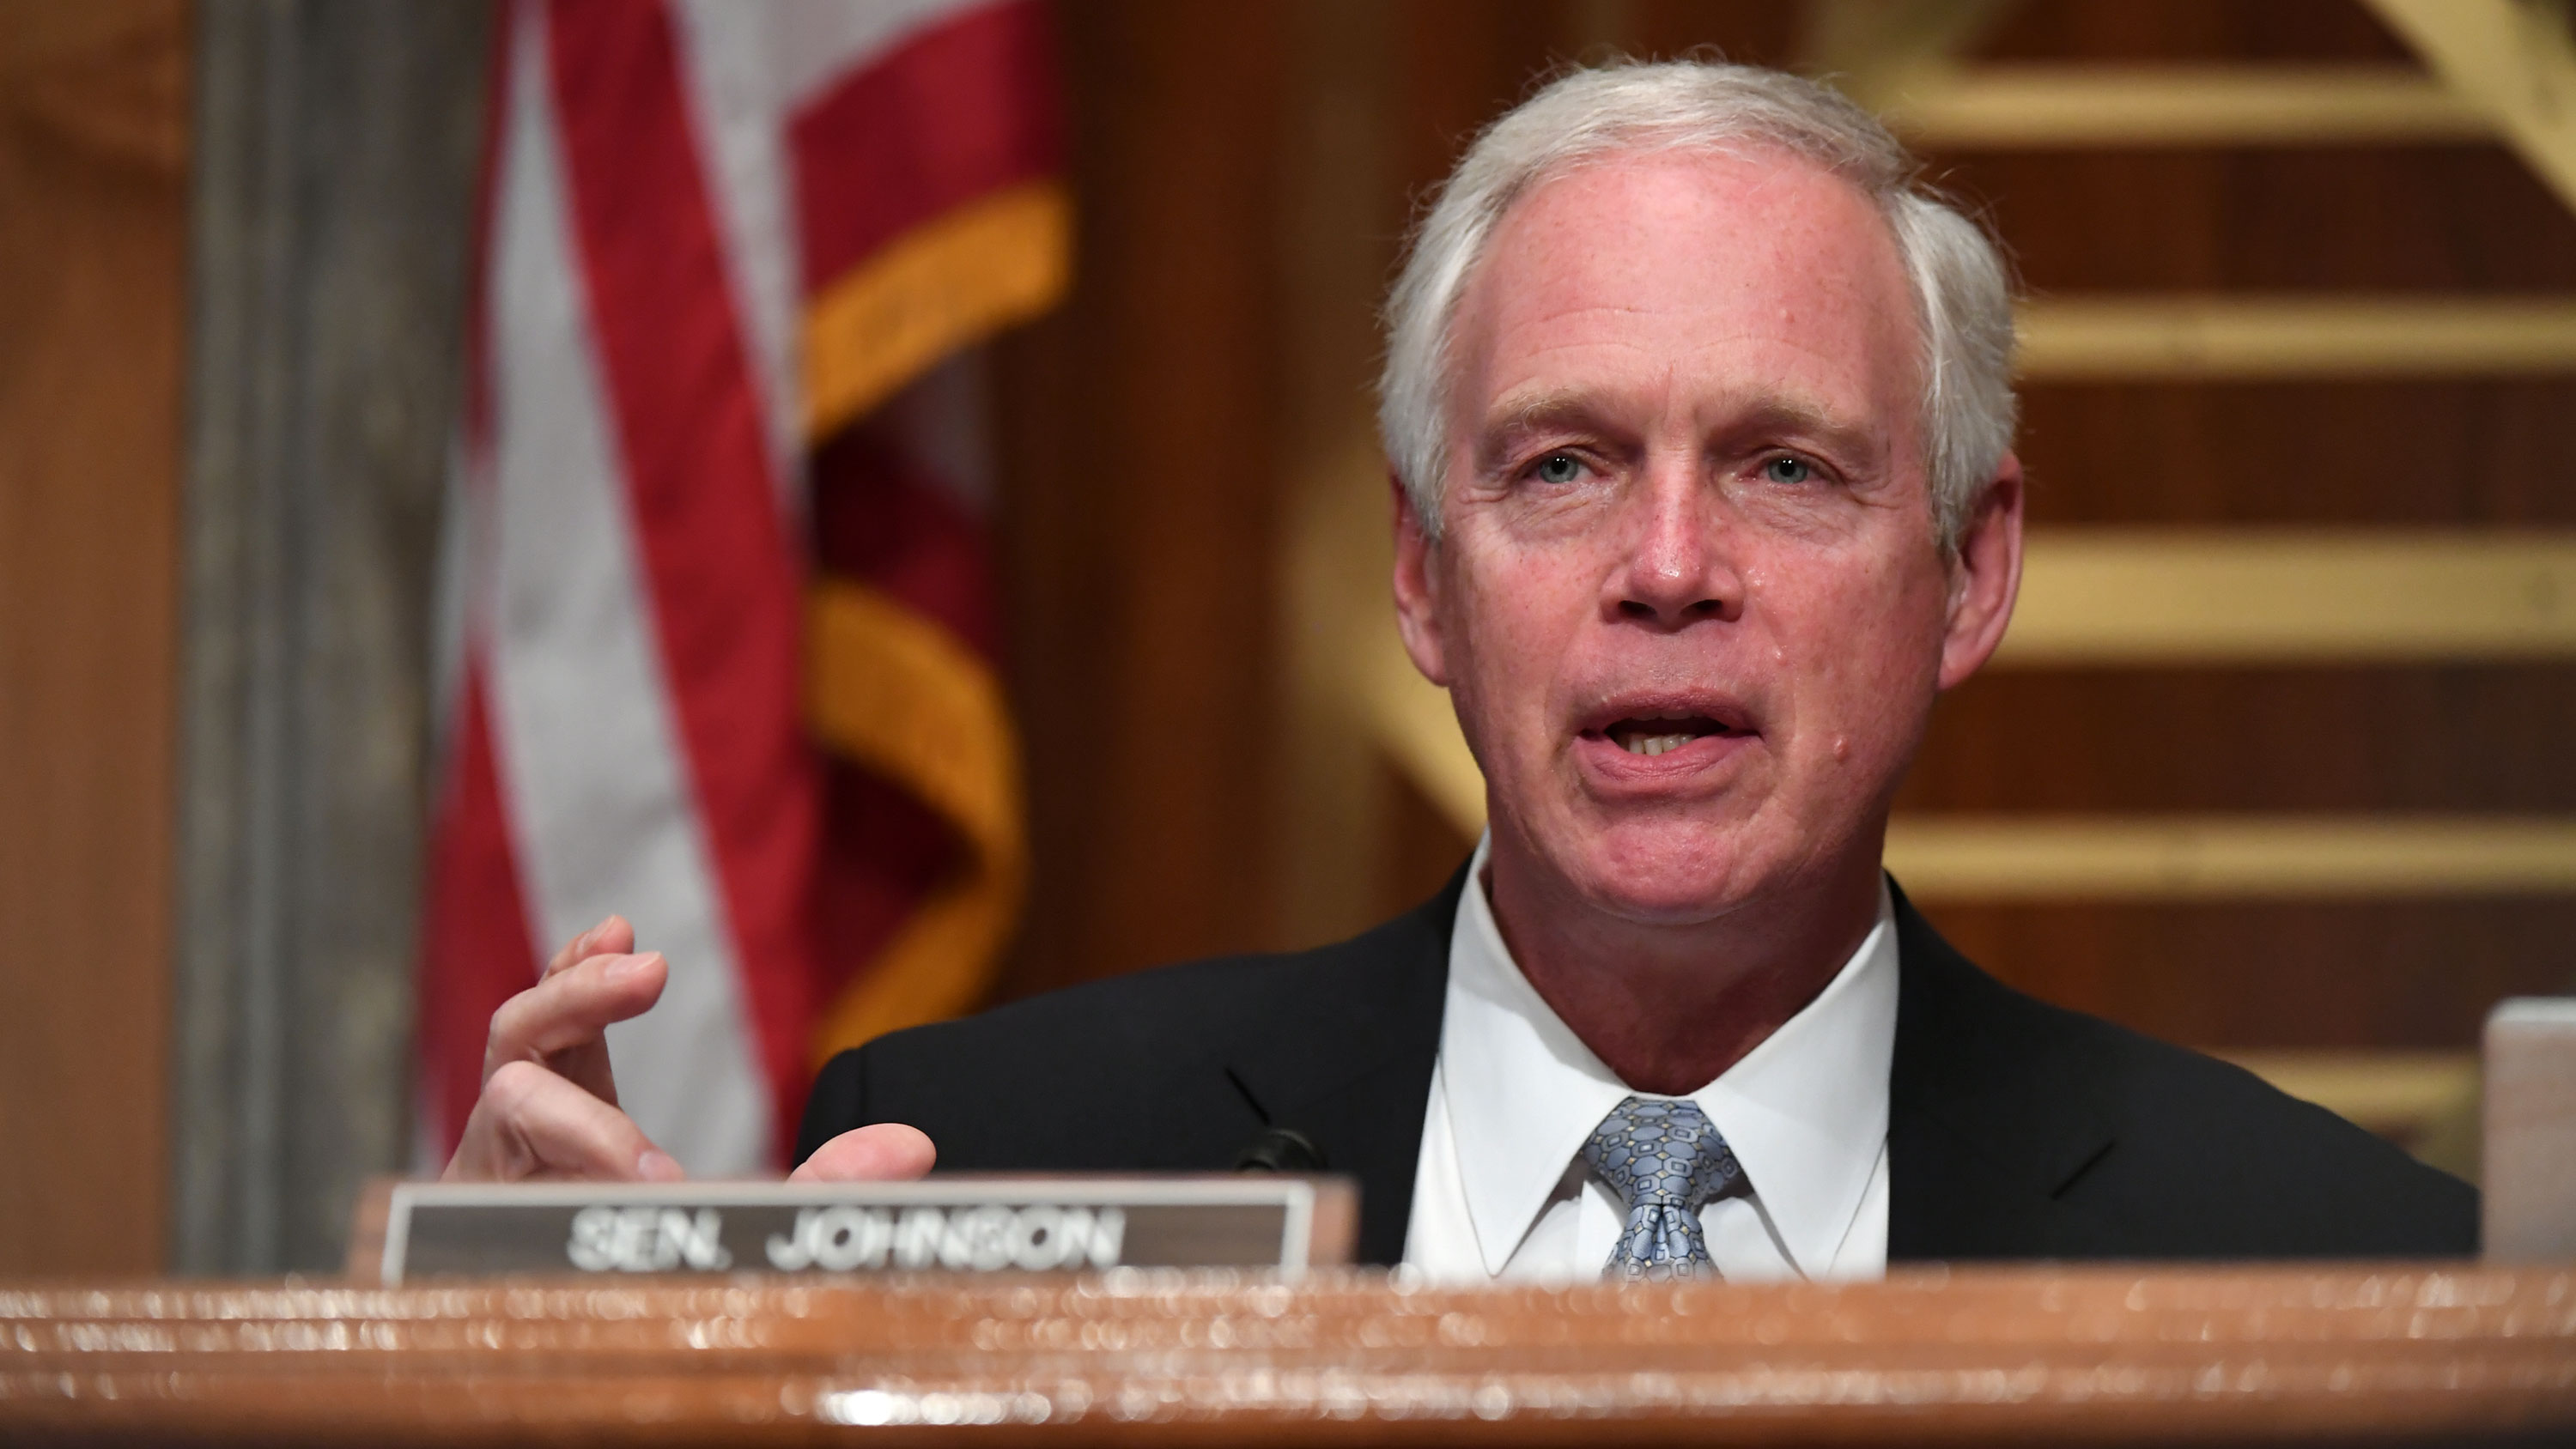 Sen. Ron Johnson at a hearing on Capitol Hill on August 6.